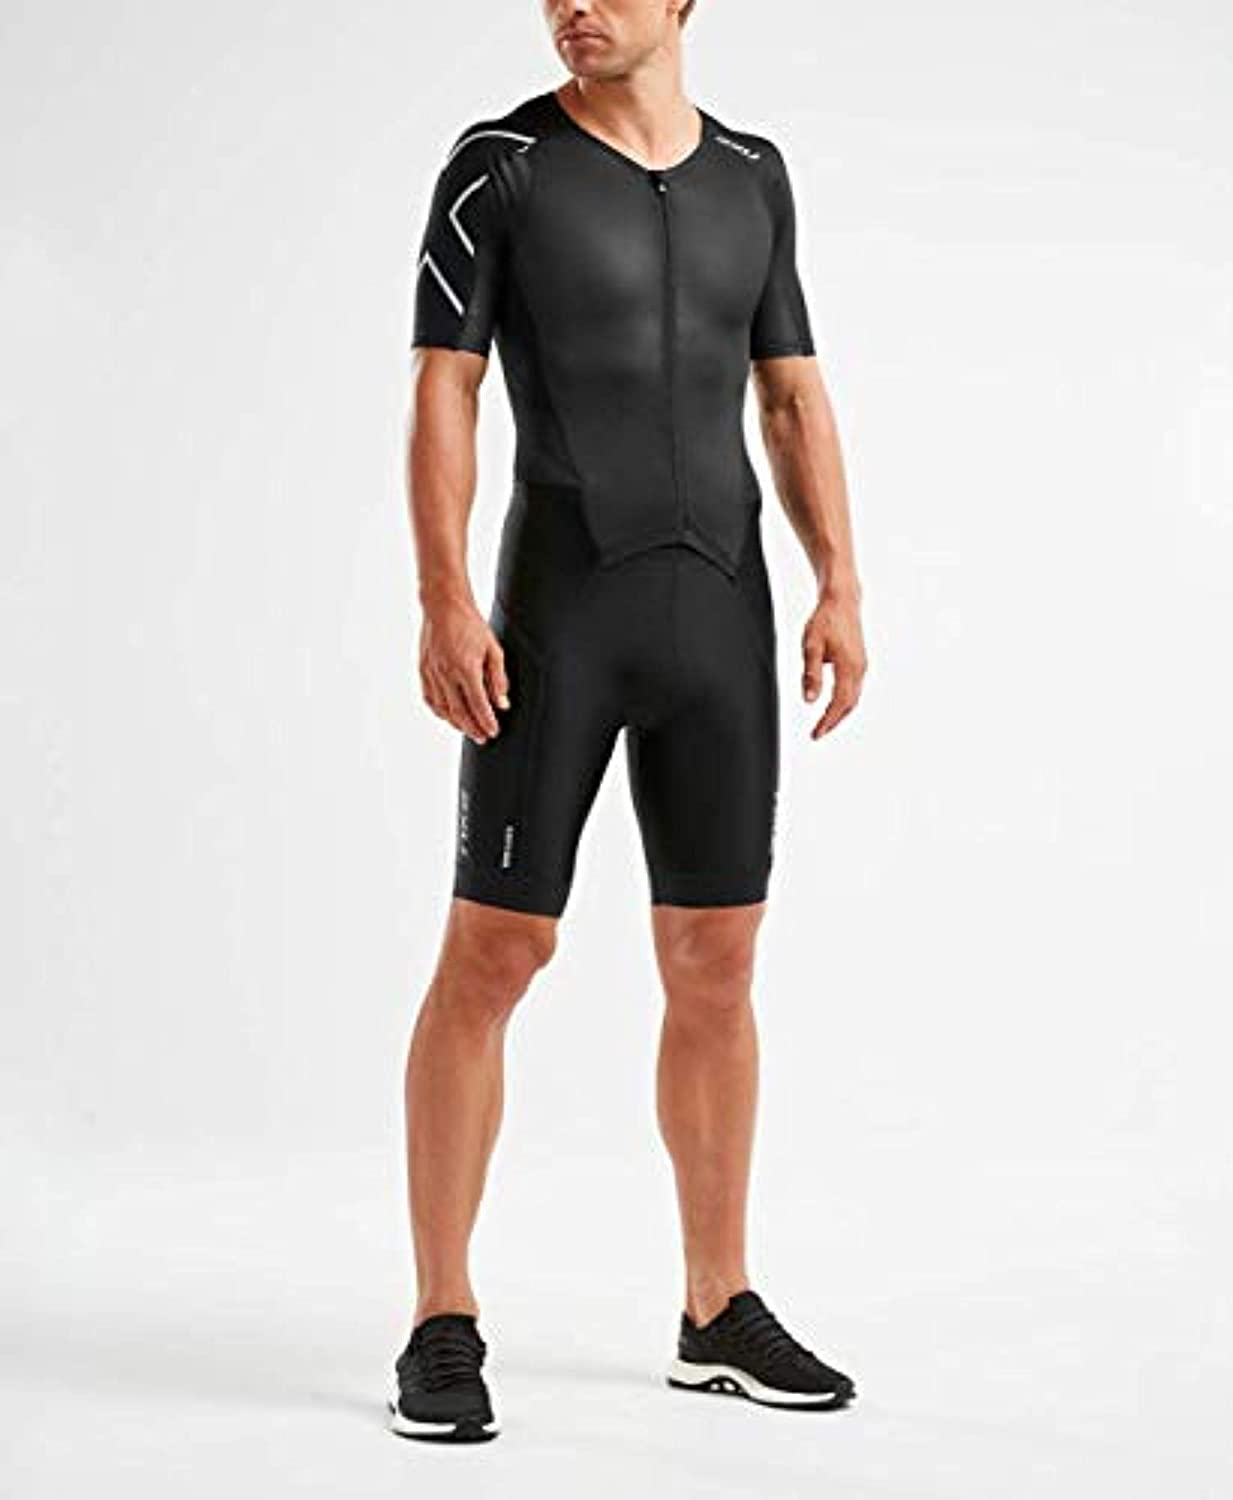 2XU PERFORM FULL TRISUIT ZIP SLEEVED TRISUIT パフォーム 2XU フルジップトライスーツ B07F6JVBT4 パフォーム ネイビー/ライムエード(NVY/LMA) Large Large|ネイビー/ライムエード(NVY/LMA), UPPER GATE:2786ab58 --- ero-shop-kupidon.ru